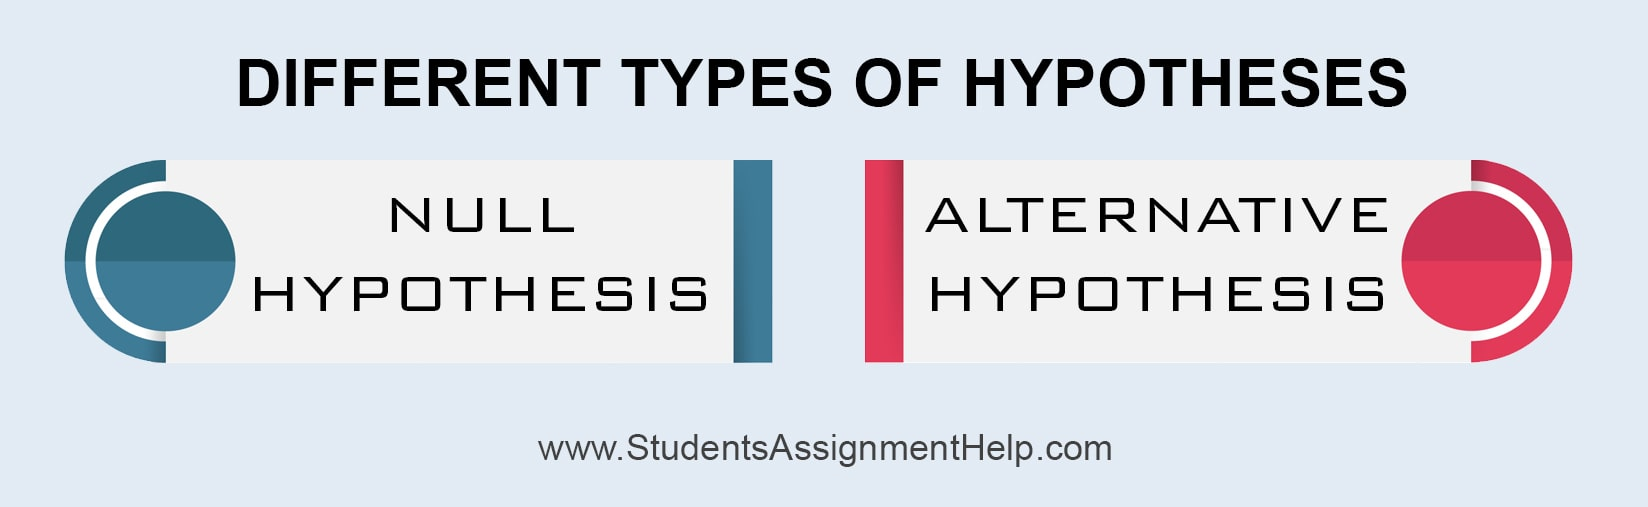 Different Types Of Hypotheses